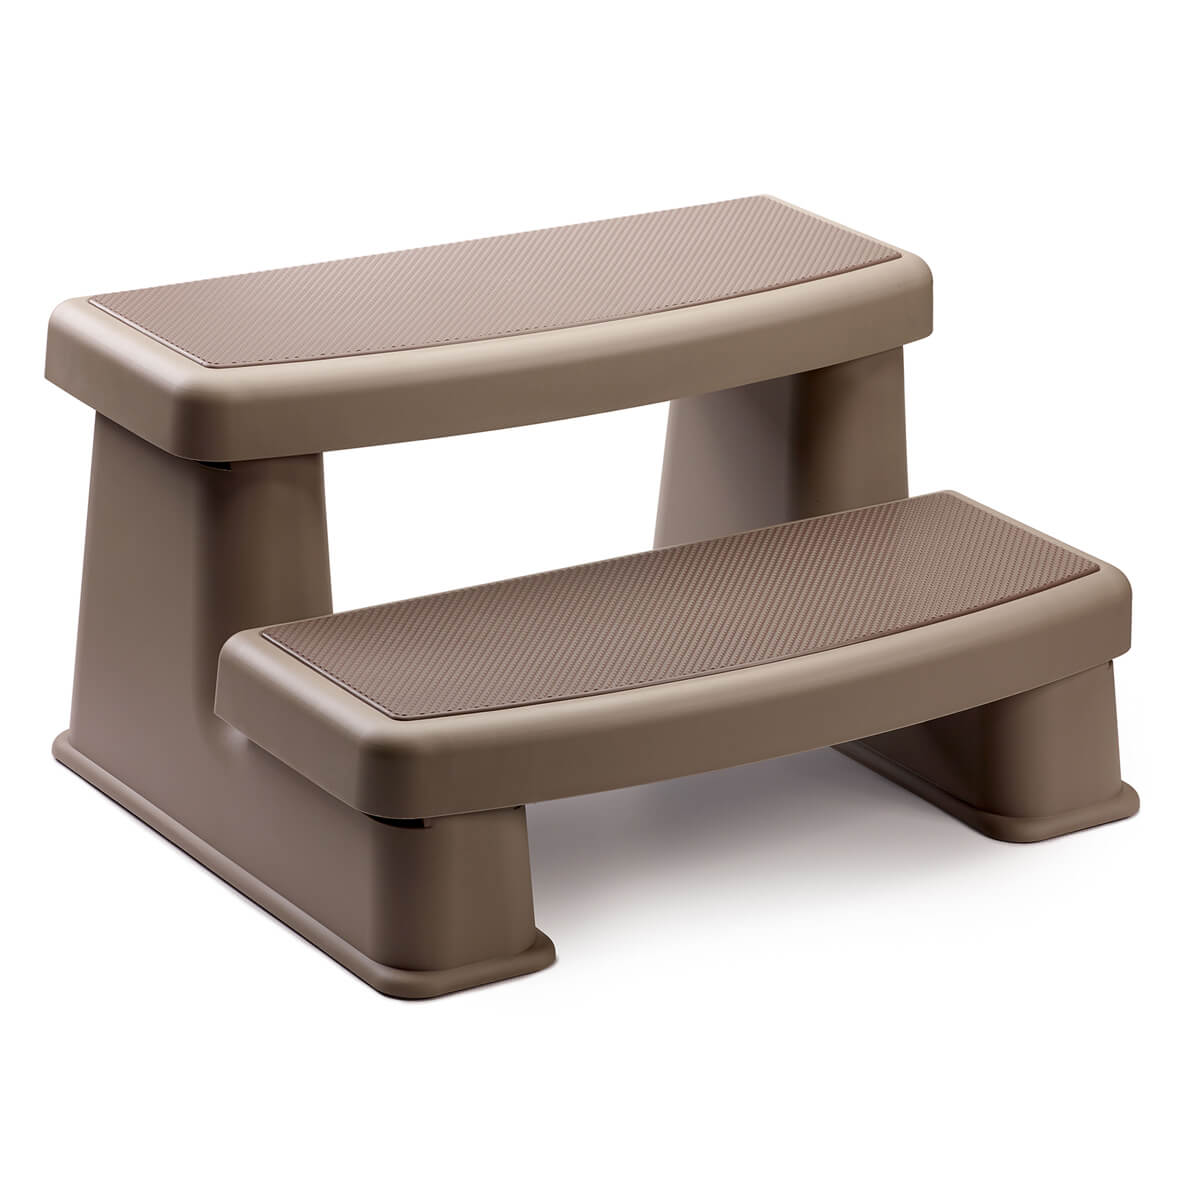 Caldera Spas 174 32 Quot Polymer Hot Tub Steps Brazos Valley